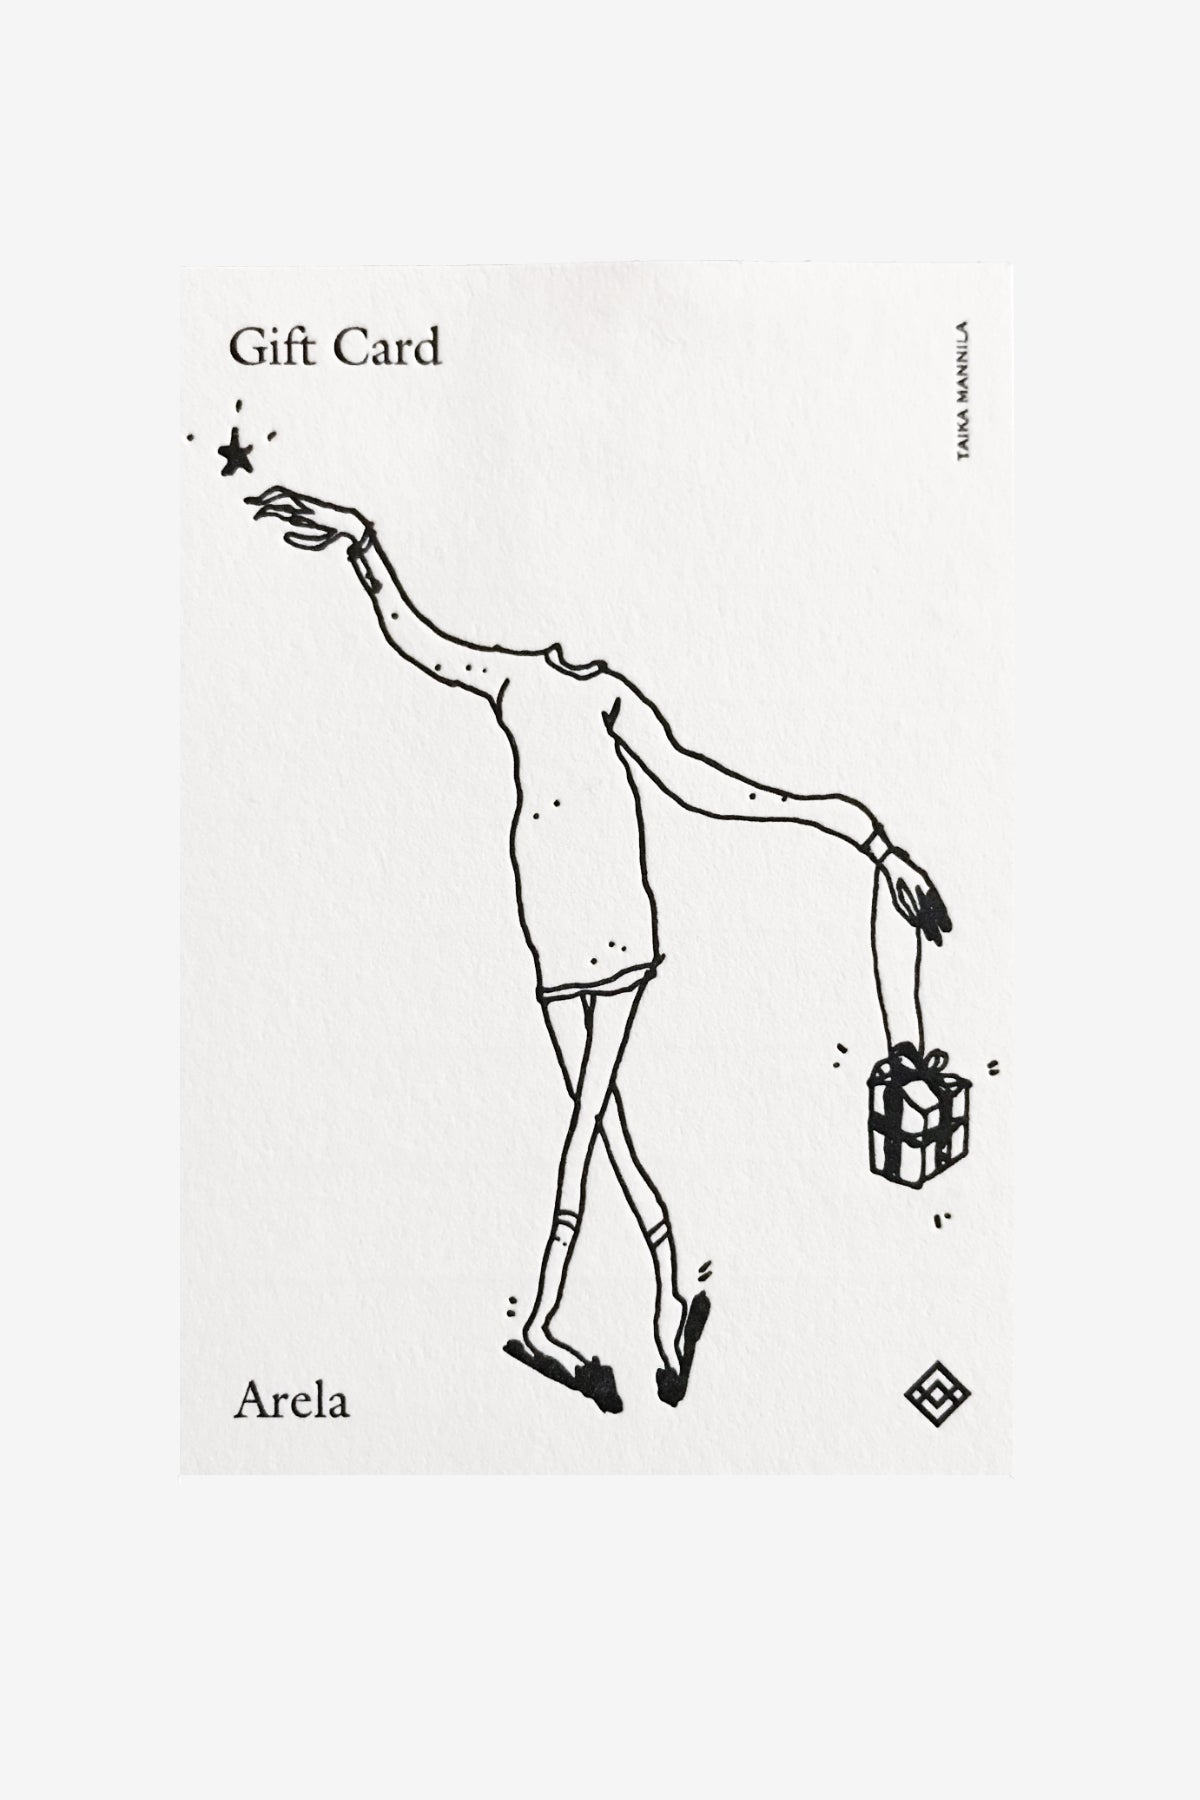 Gift Card – digital